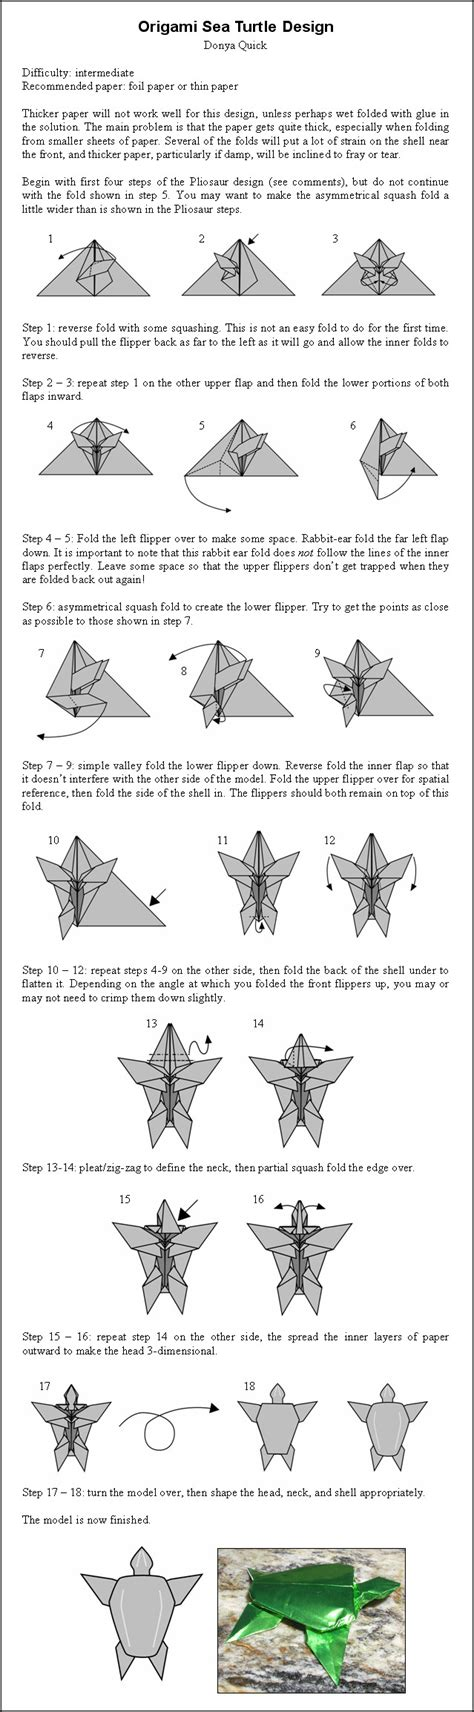 How To Make Origami Turtle - origami sea turtle instr by donyaquick on deviantart